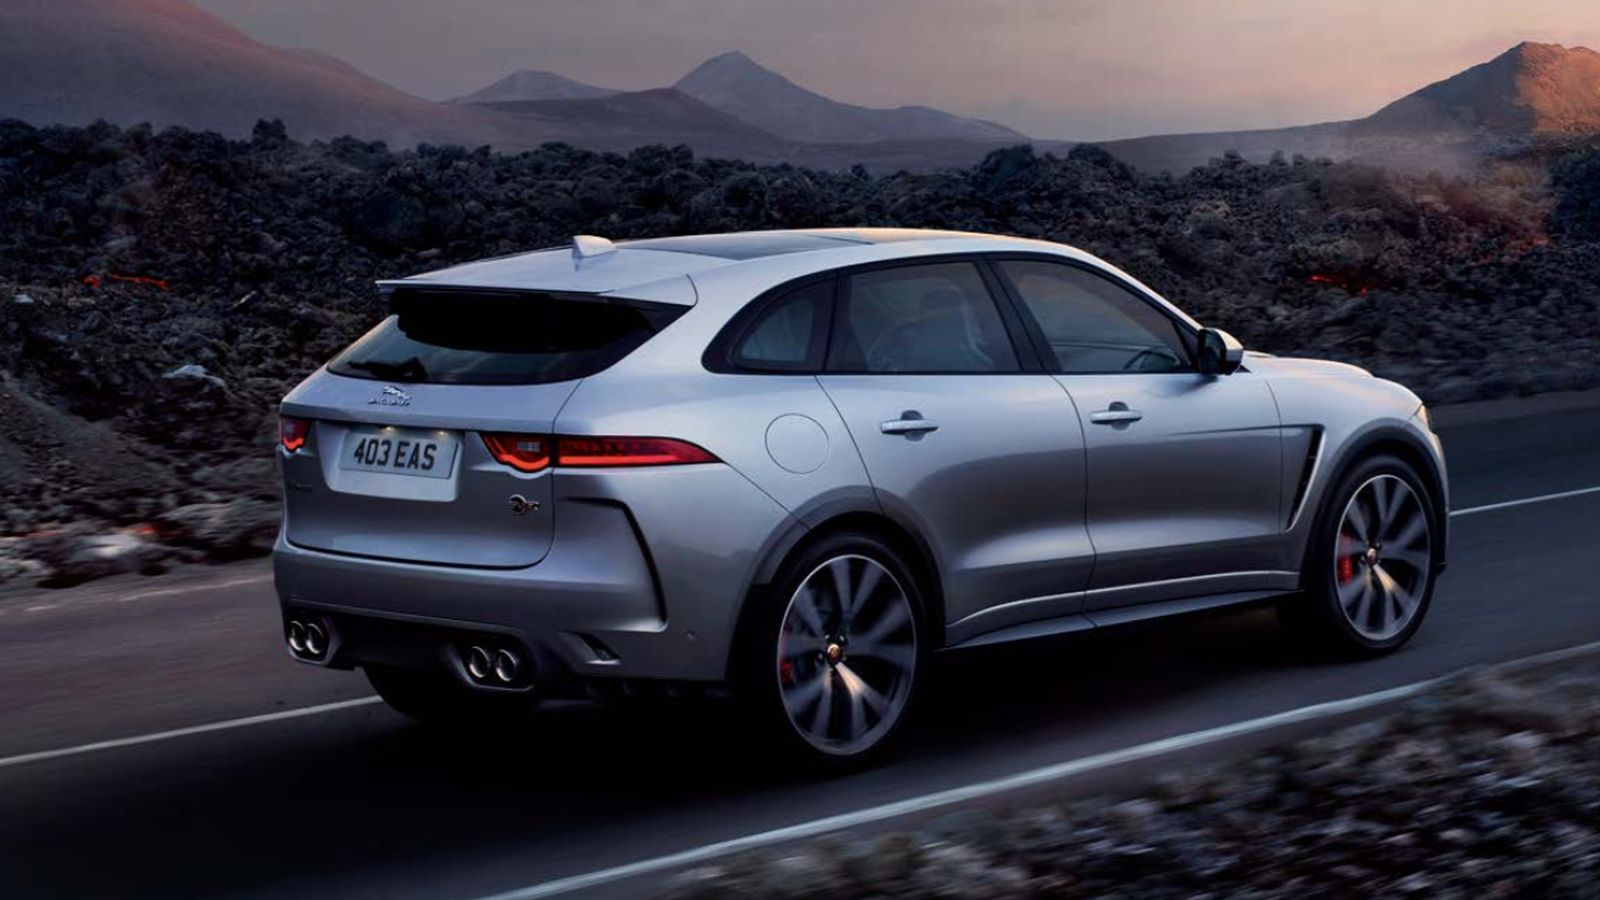 Jaguar S F Pace Svr Is Now Available In South Africa For R1 5m